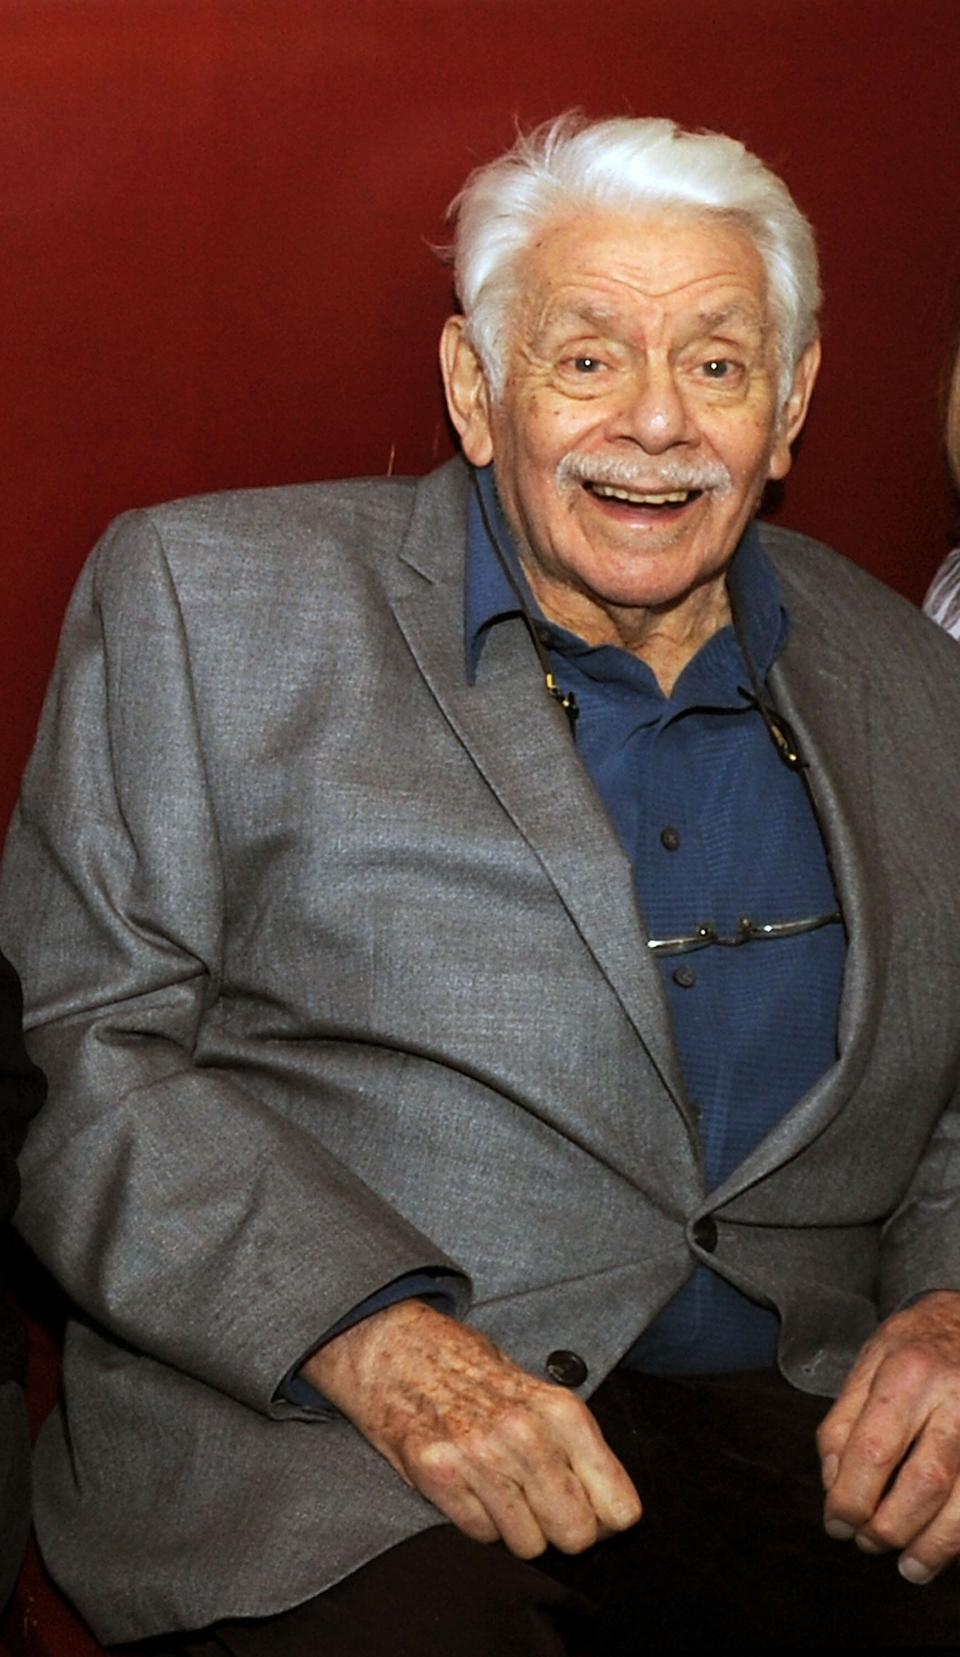 <strong>Jerry Stiller (1927 – 2020)<br /><br /><br /></strong>The comedy actor and father to Ben Stiller was best known for his roles in The King Of Queens and Seinfeld. He died in May, at the age of 92.